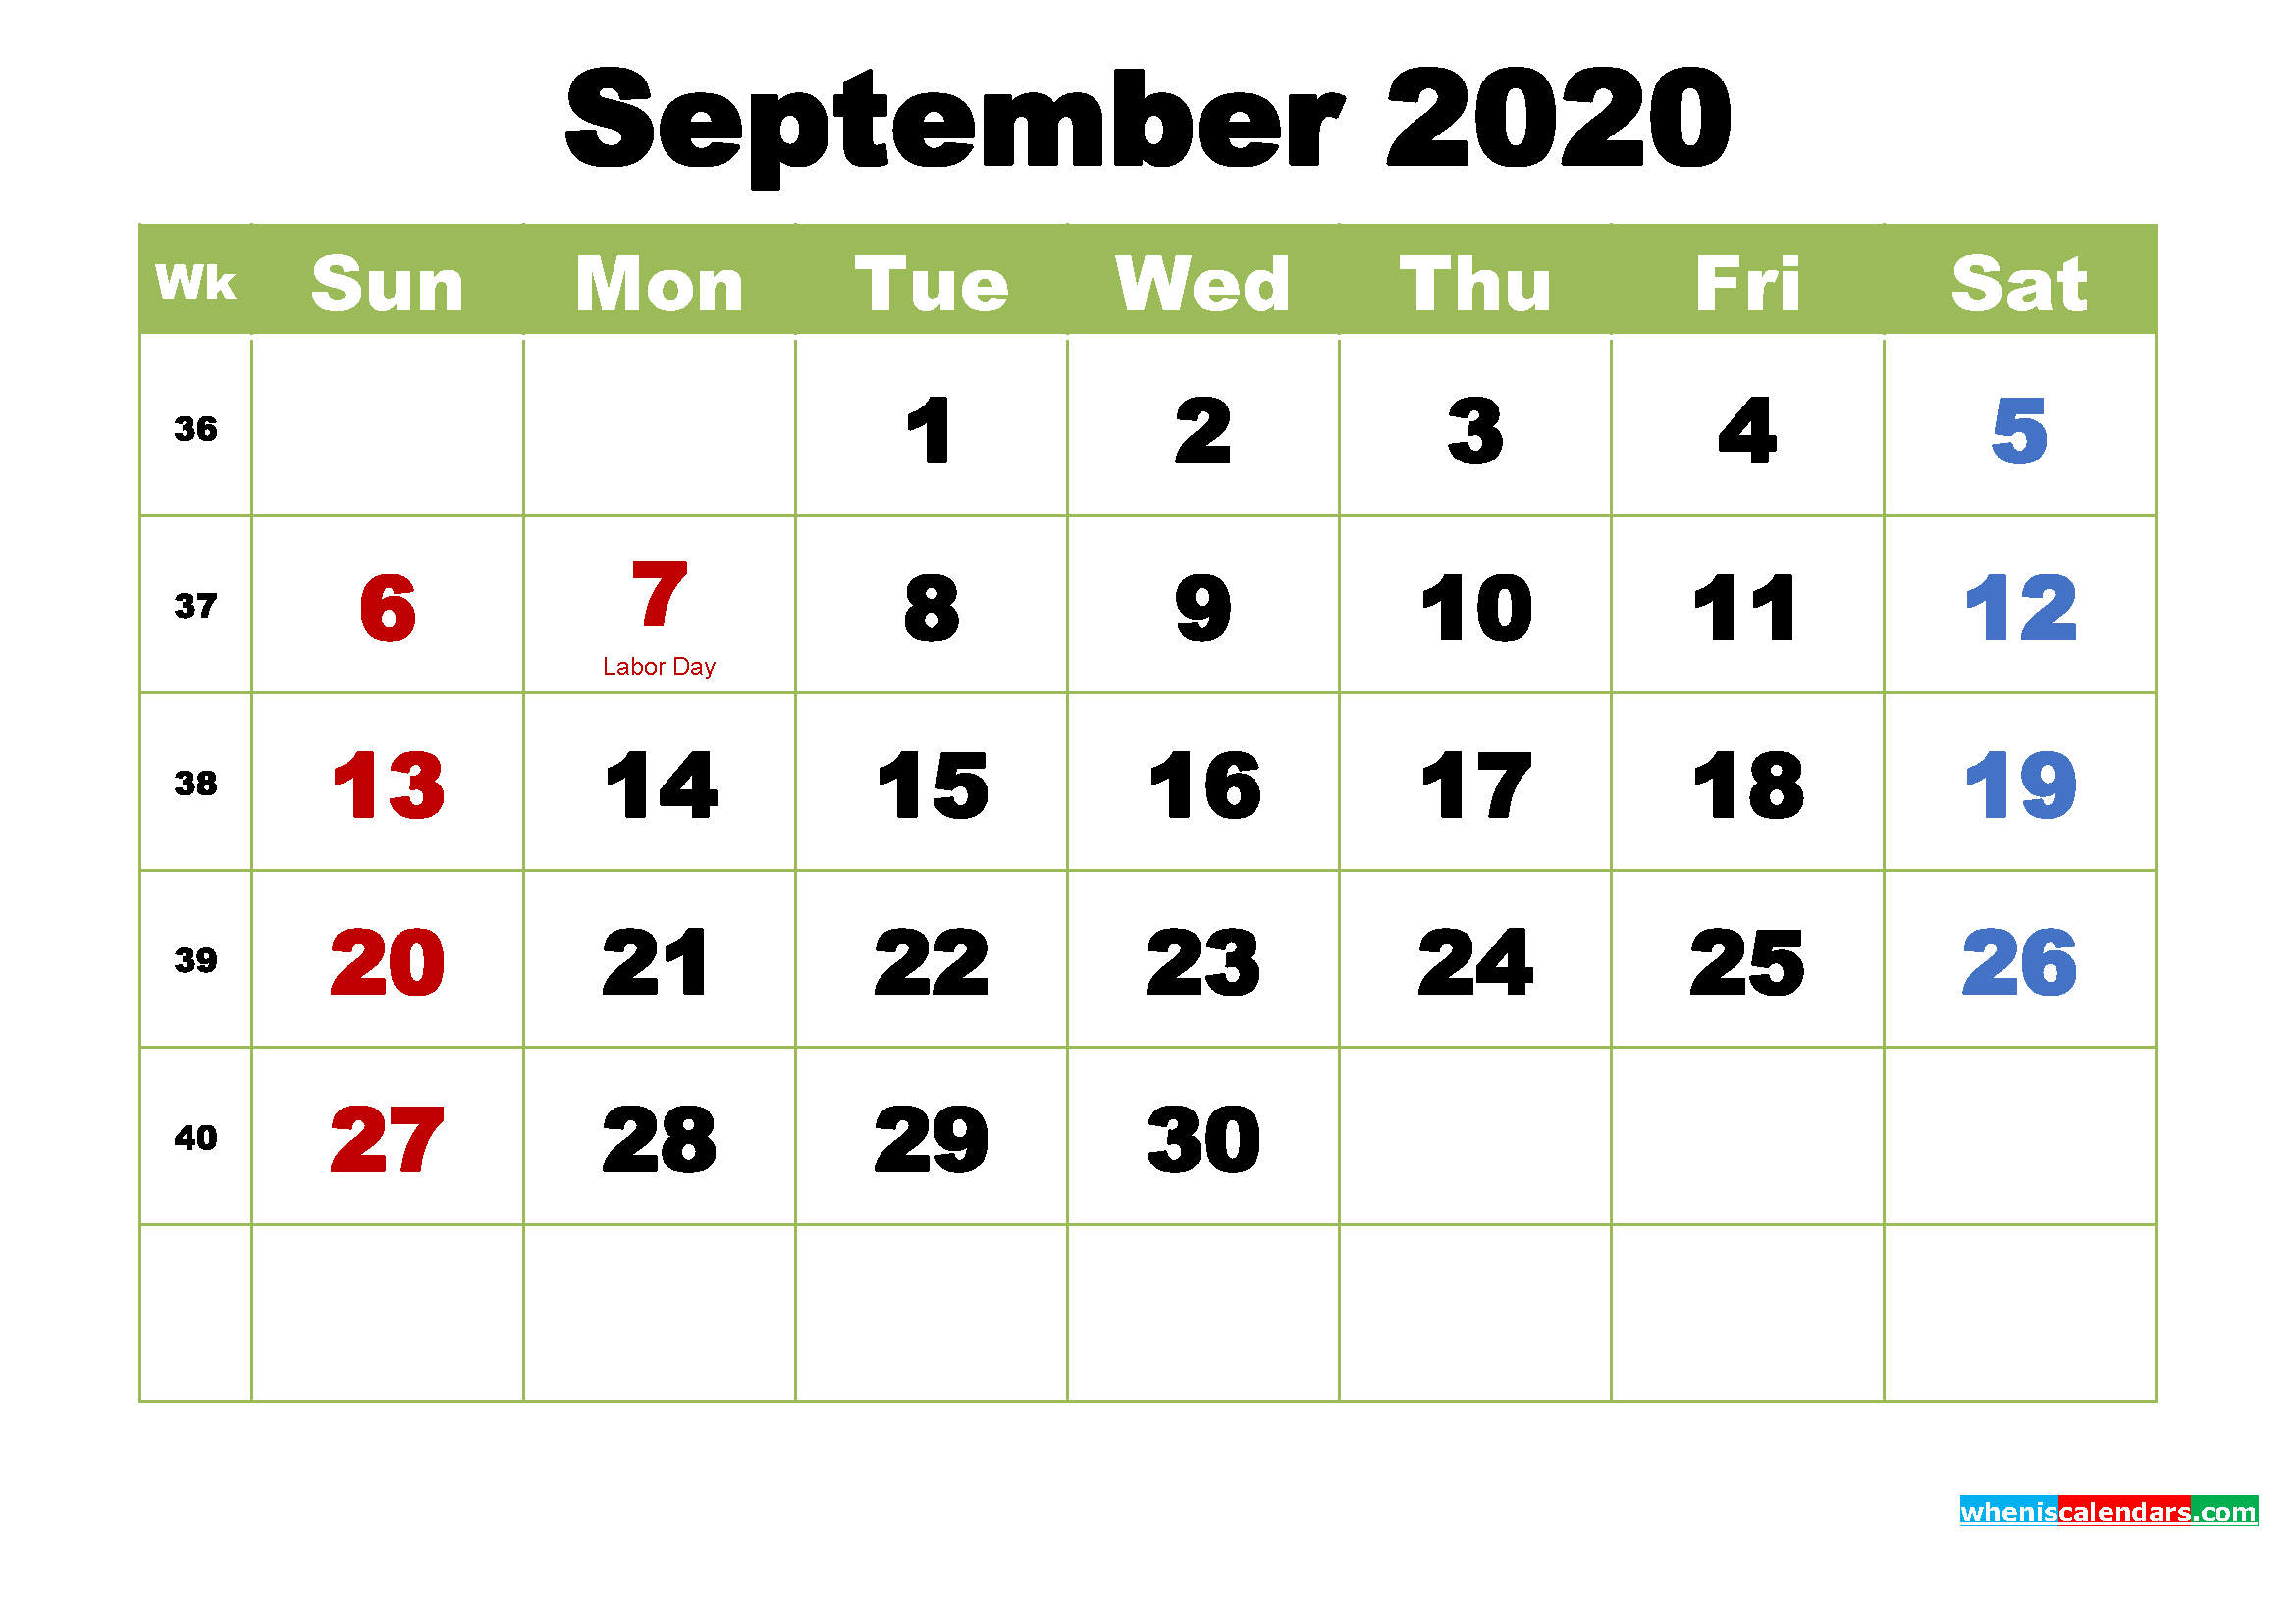 September 2020 Calendar with Holidays Wallpaper